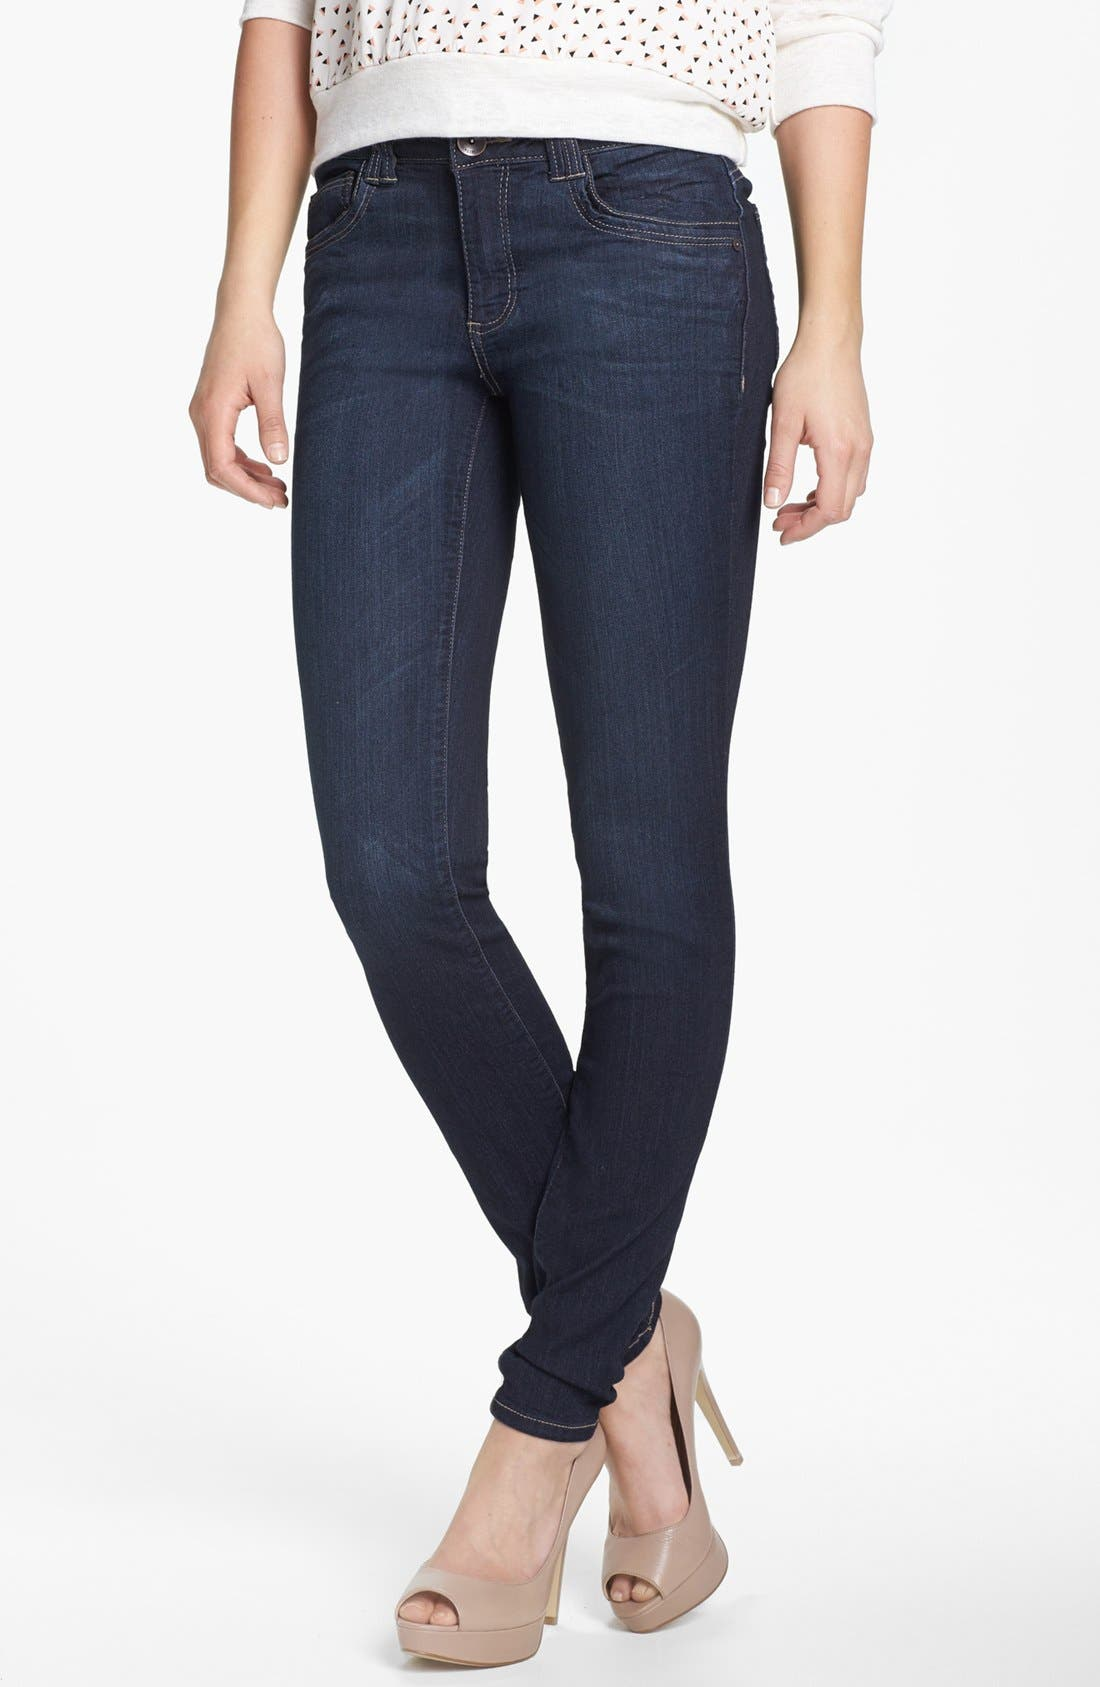 Main Image - Wit & Wisdom Skinny Jeans (Indigo) (Nordstrom Exclusive)